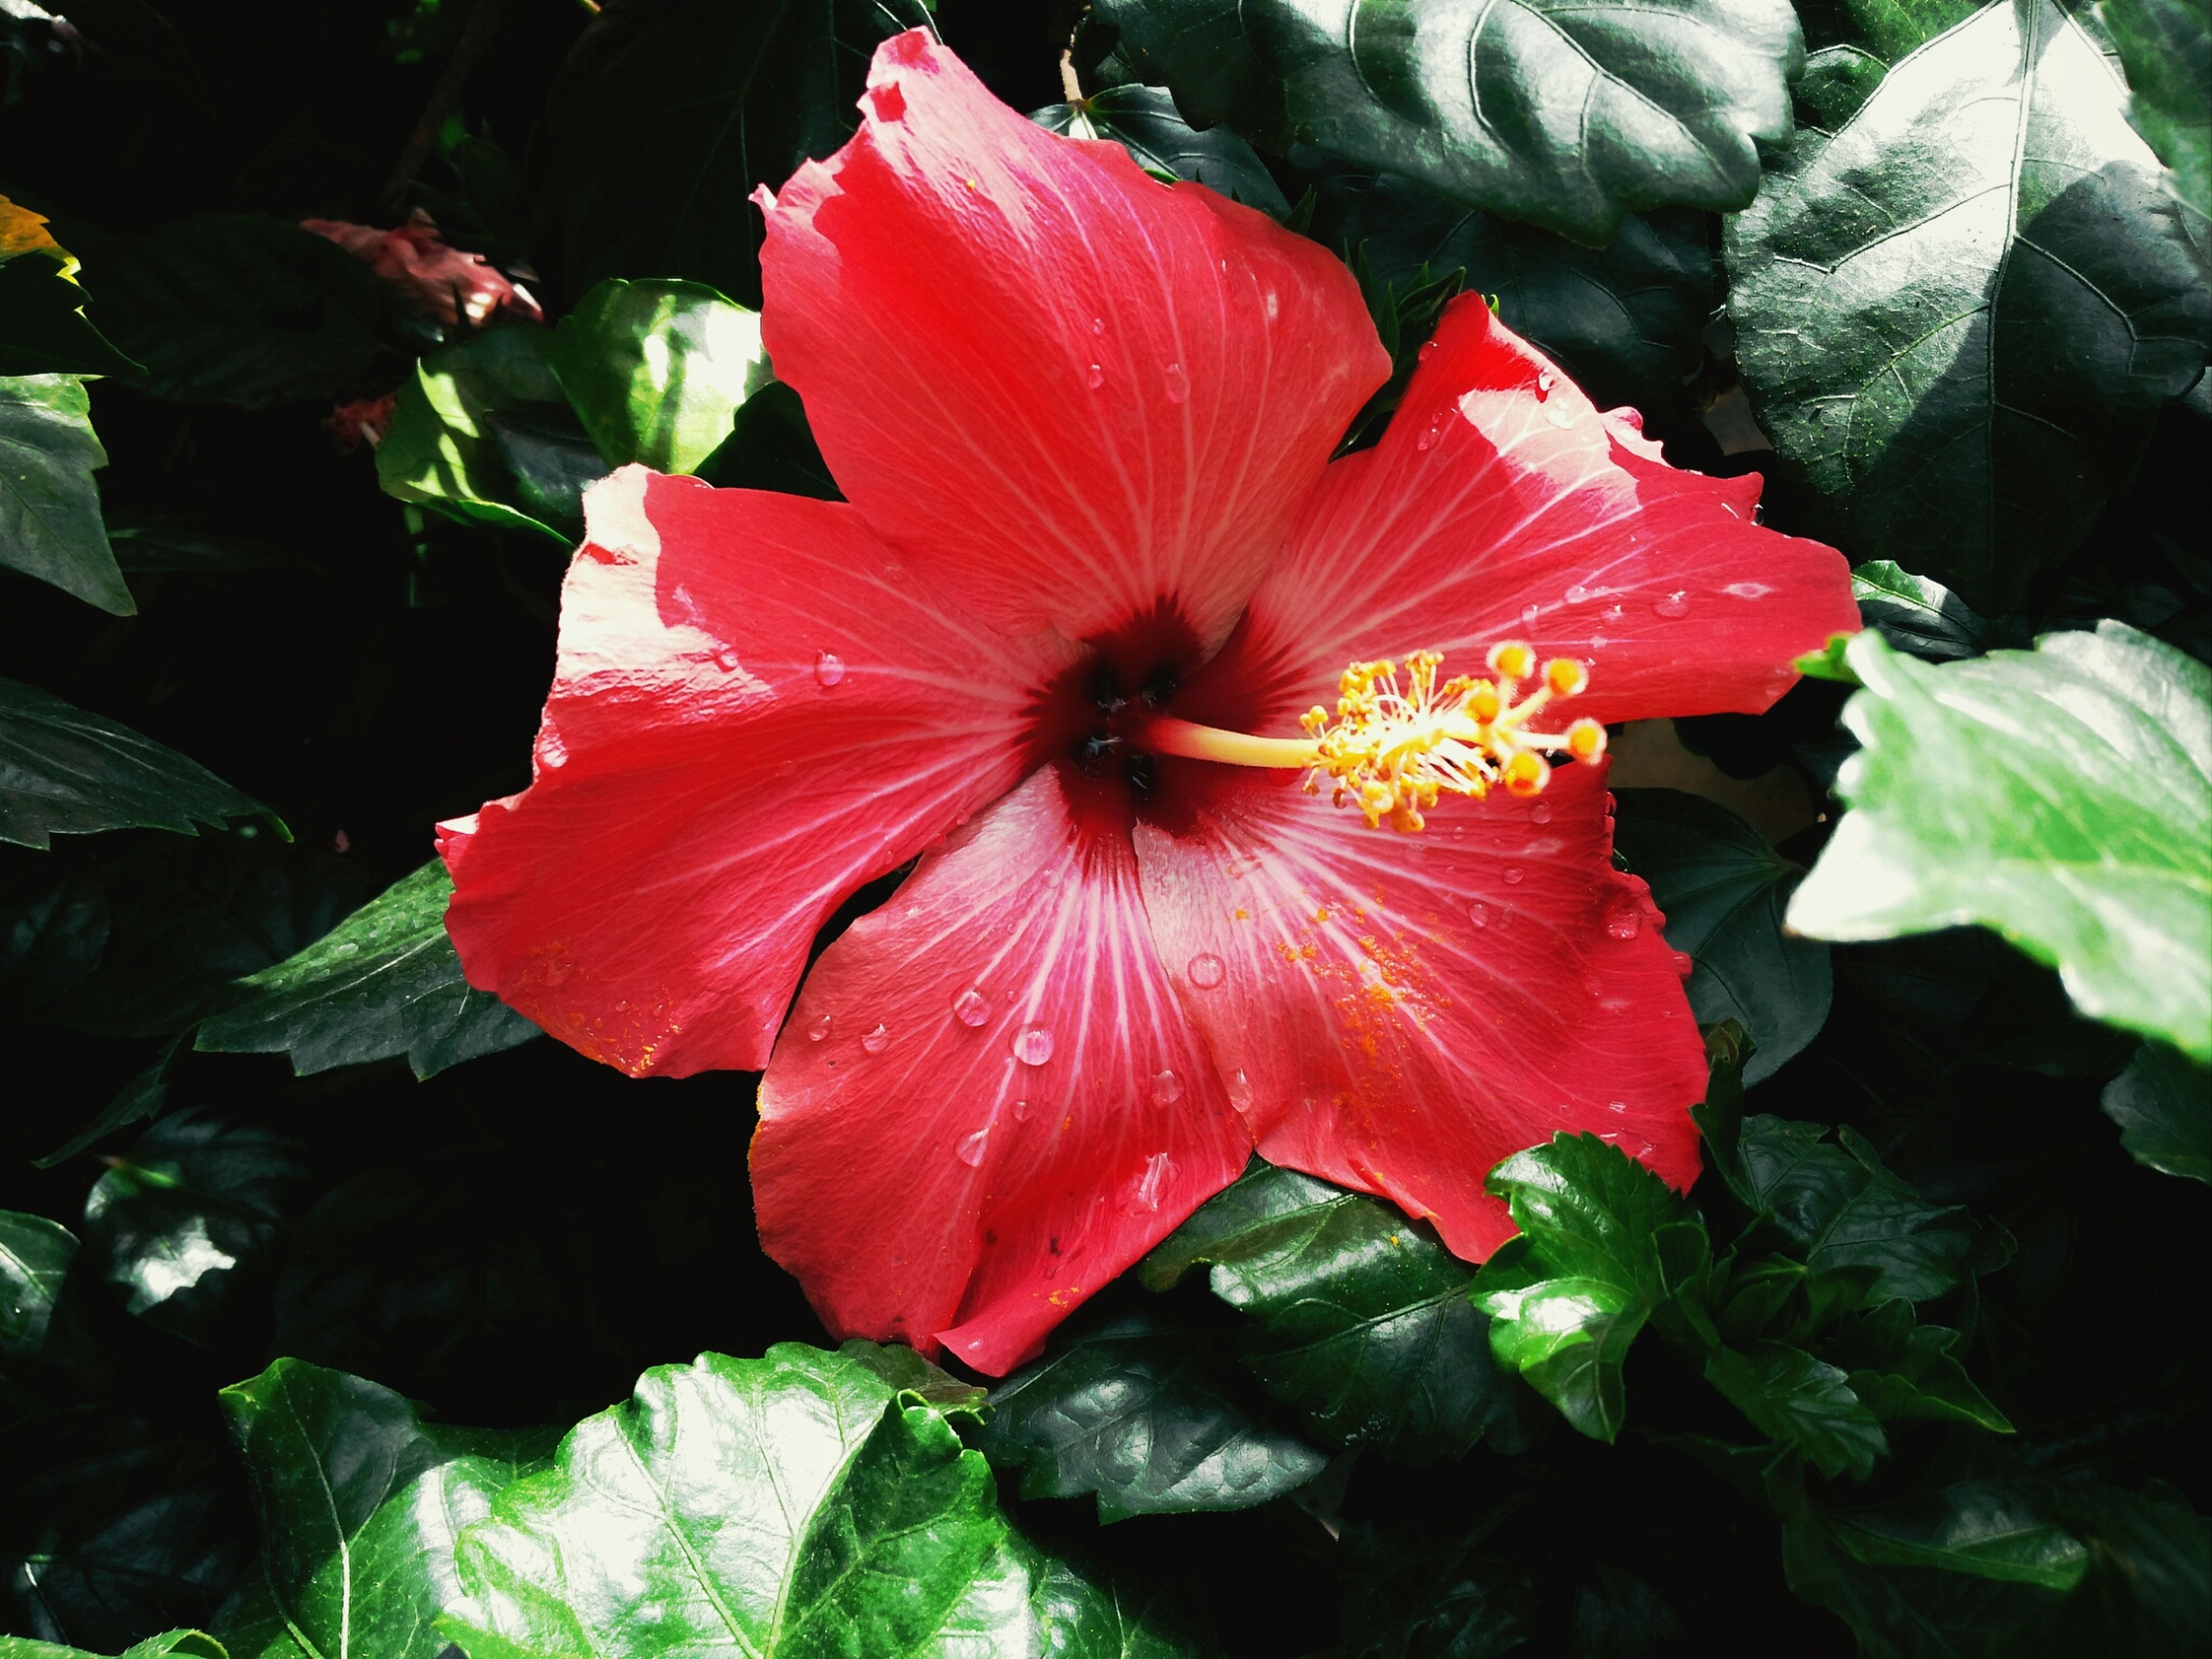 flower, petal, freshness, flower head, fragility, red, growth, beauty in nature, leaf, blooming, plant, nature, single flower, close-up, pollen, high angle view, in bloom, hibiscus, stamen, day